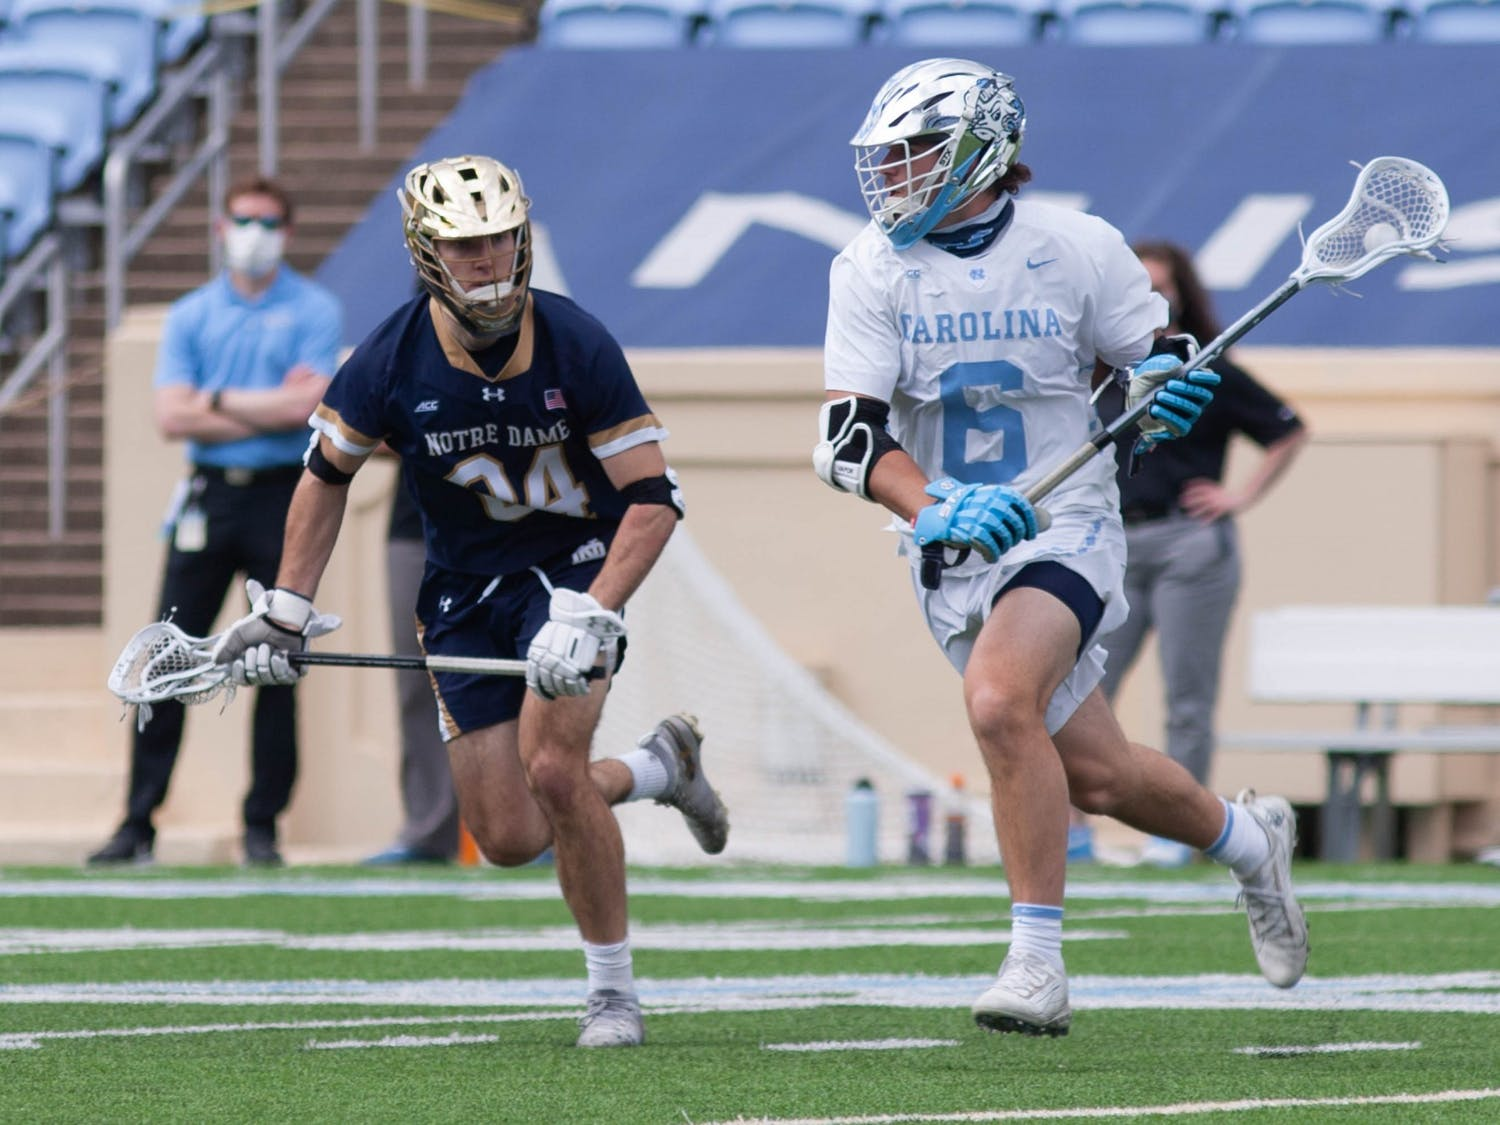 UNC first-year midfielder Cole Herbert (6) cradles the ball during the game against Notre Dame on April 25, 2021 at Kenan Stadium. The Tar Heels' defeated the Fighting Irish 12-10.